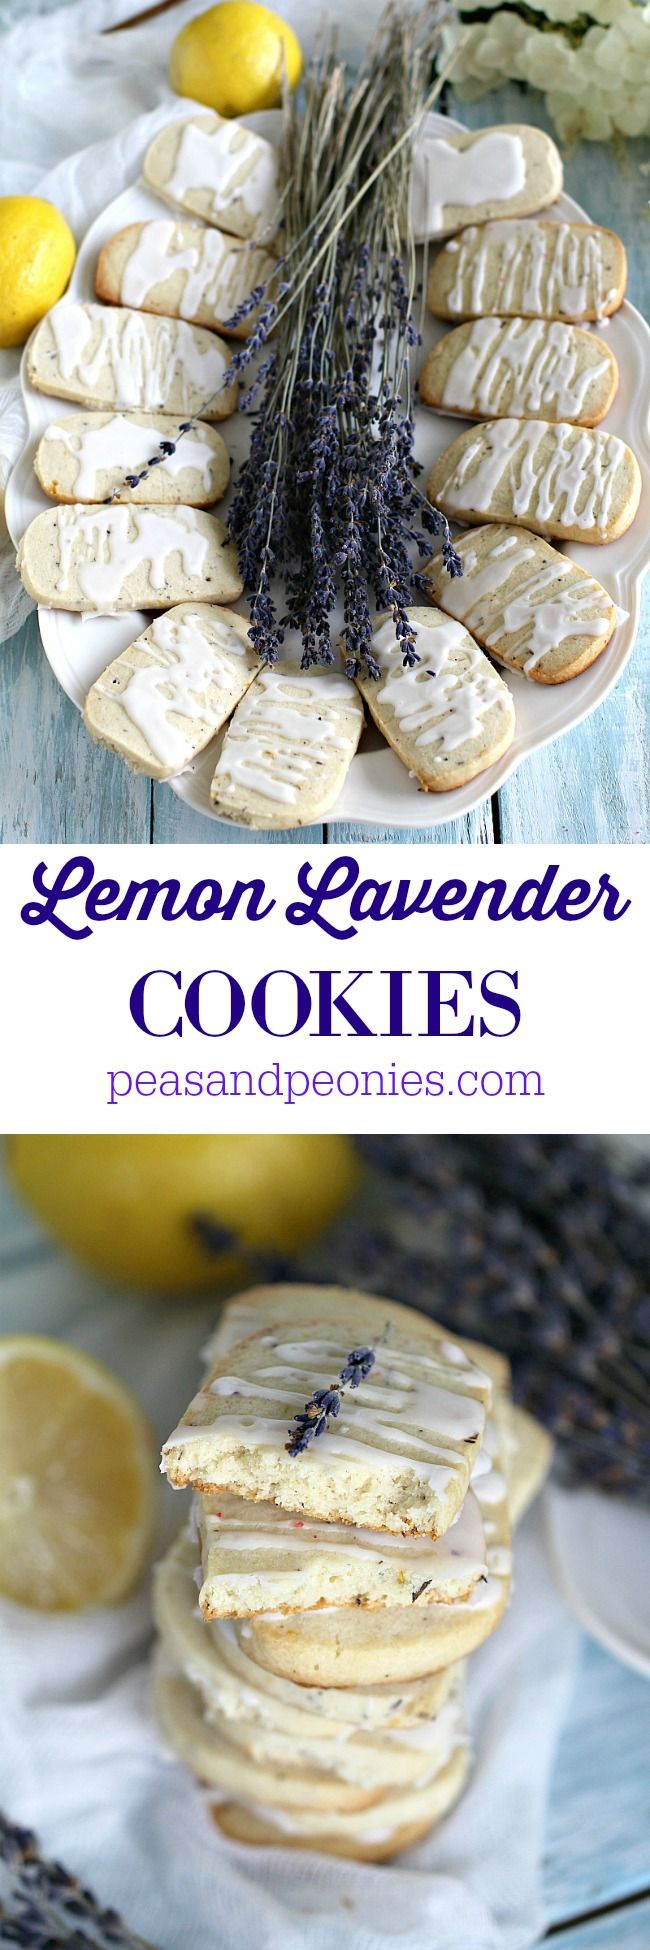 Shortbread Lemon Lavender Cookies melt in your mouth and are full of flavor. Topped with lemon icing for a beautiful and fresh finish. Peas and Peonies